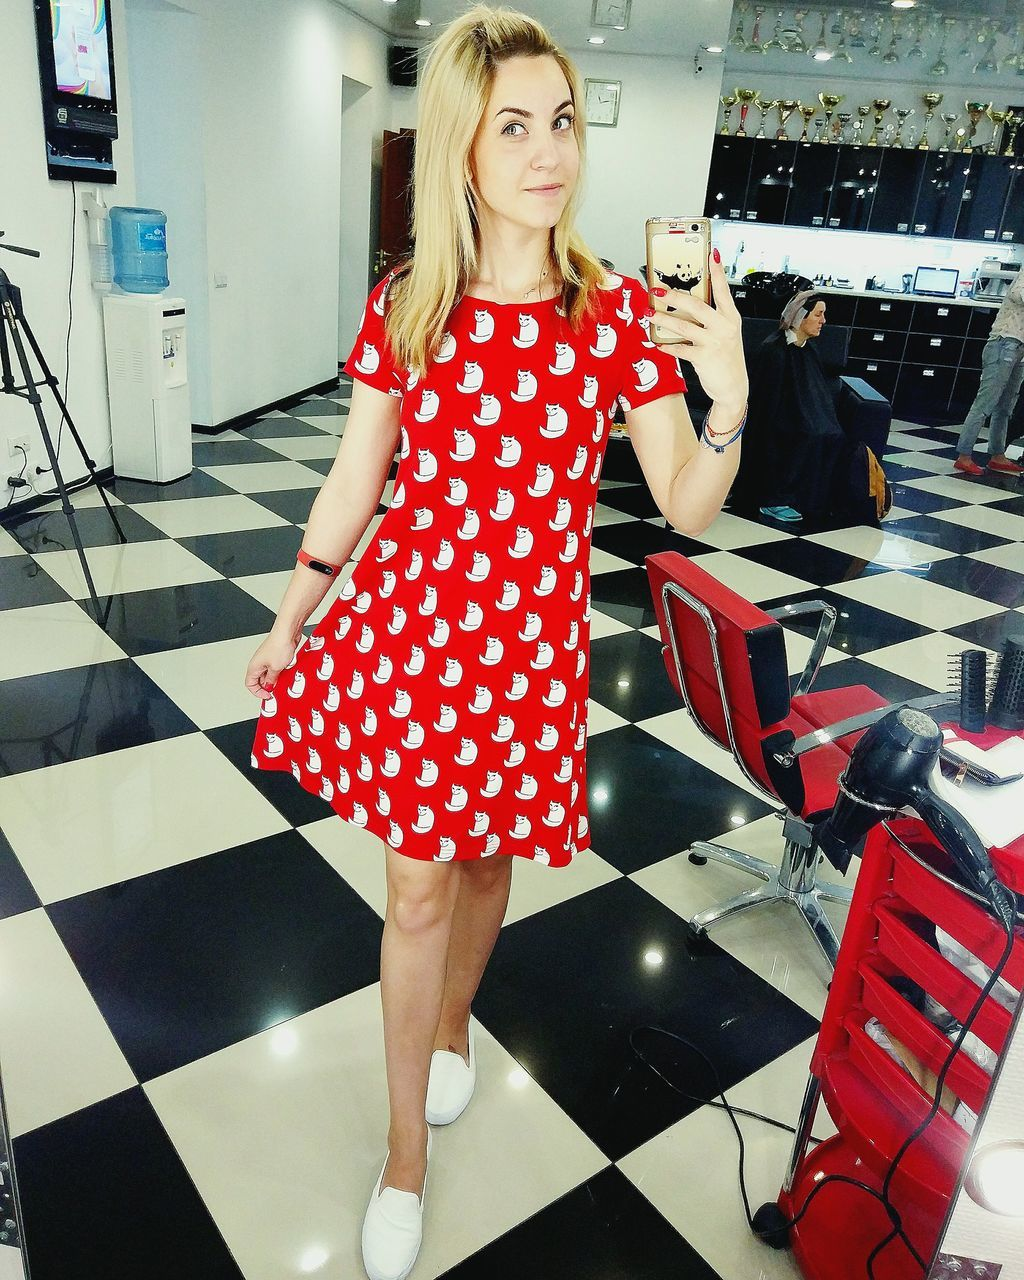 polka dot, fashion, real people, one person, lifestyles, leisure activity, red, young adult, standing, beautiful woman, choice, full length, indoors, retail, customer, blond hair, young women, glamour, portrait, day